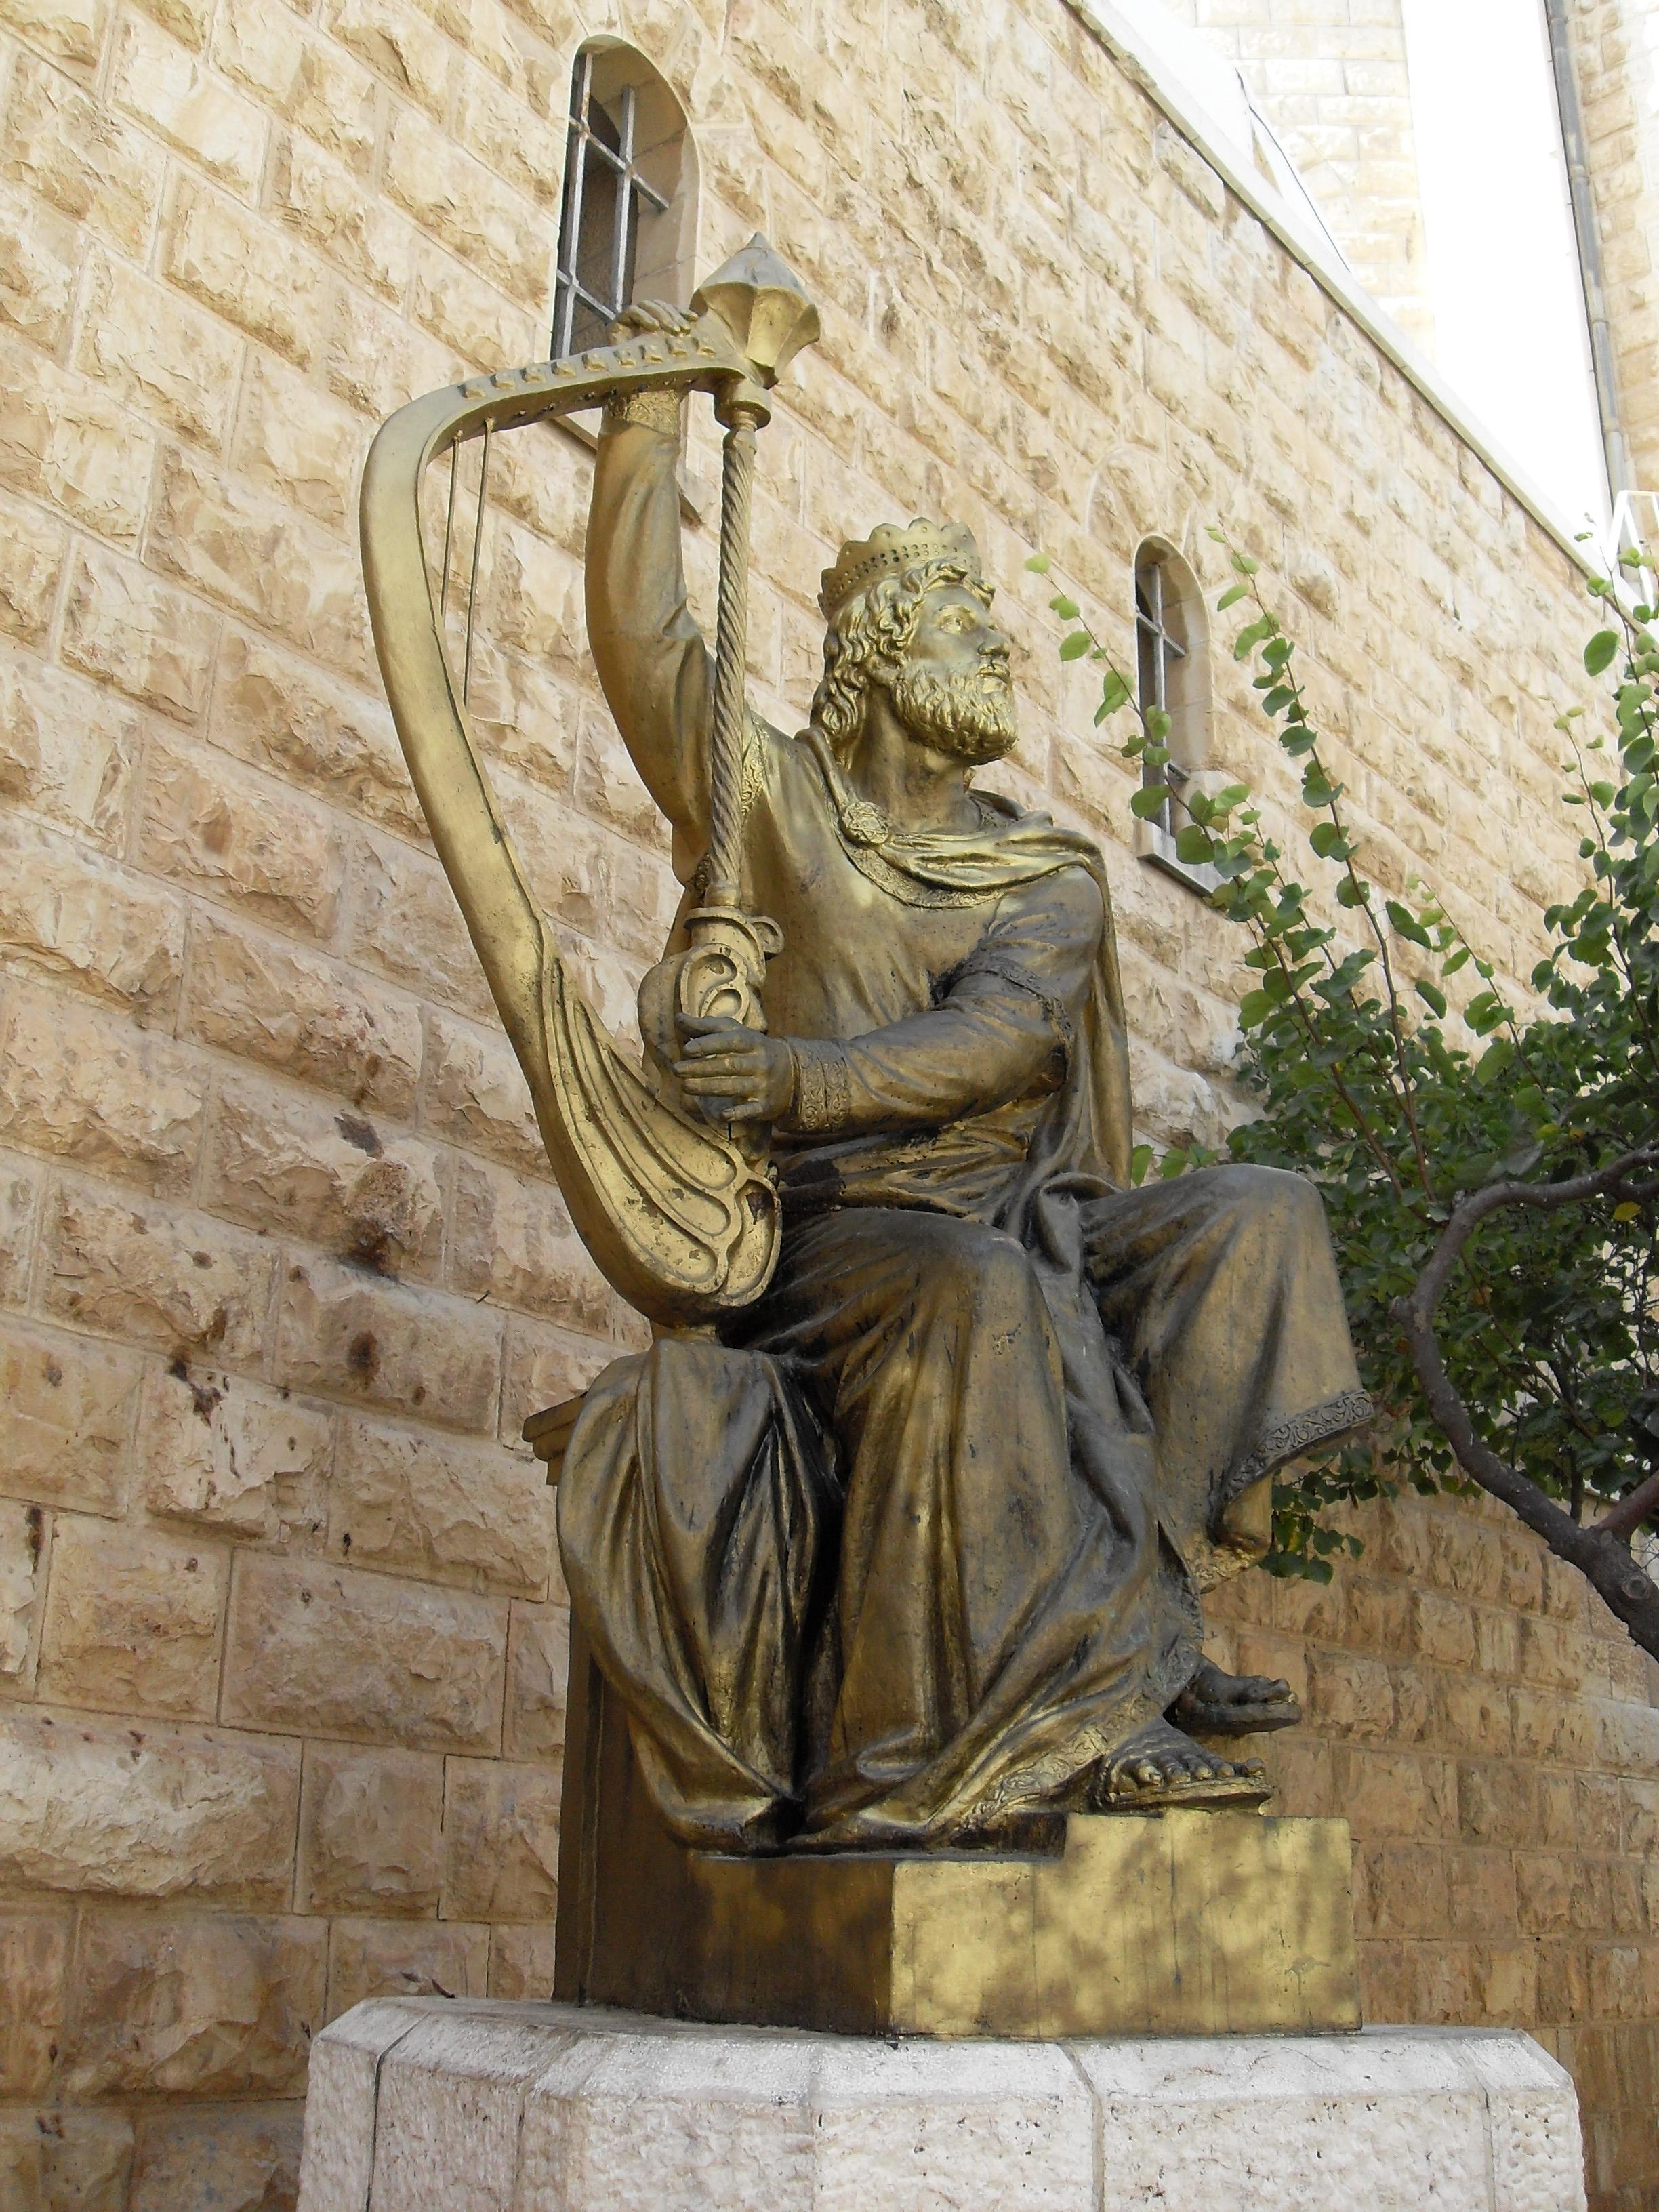 king david statue essay Research papers research paper (paper 3095) on david sculptures: david sculptures essay submitted by unknown david, who was destined to be the second king of israel, destroyed the phi.